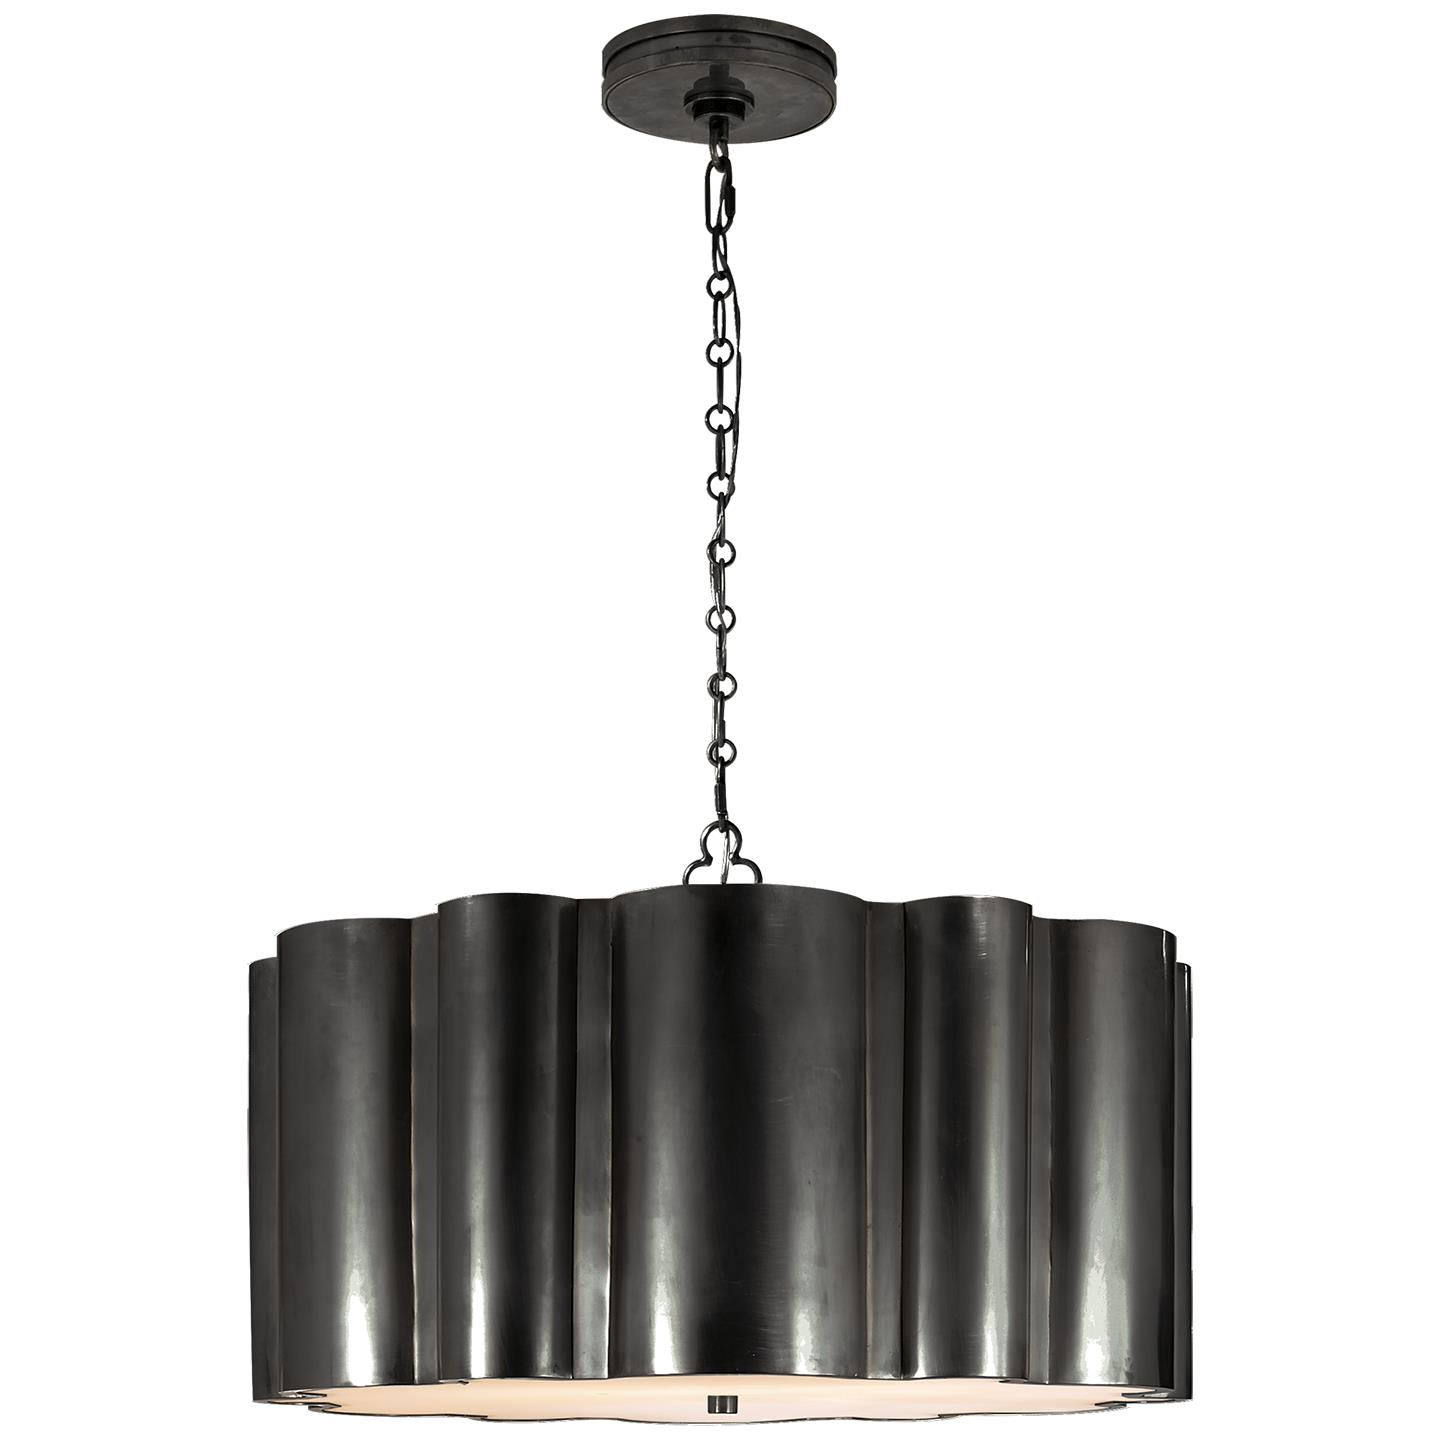 Markos Large Hanging Shade